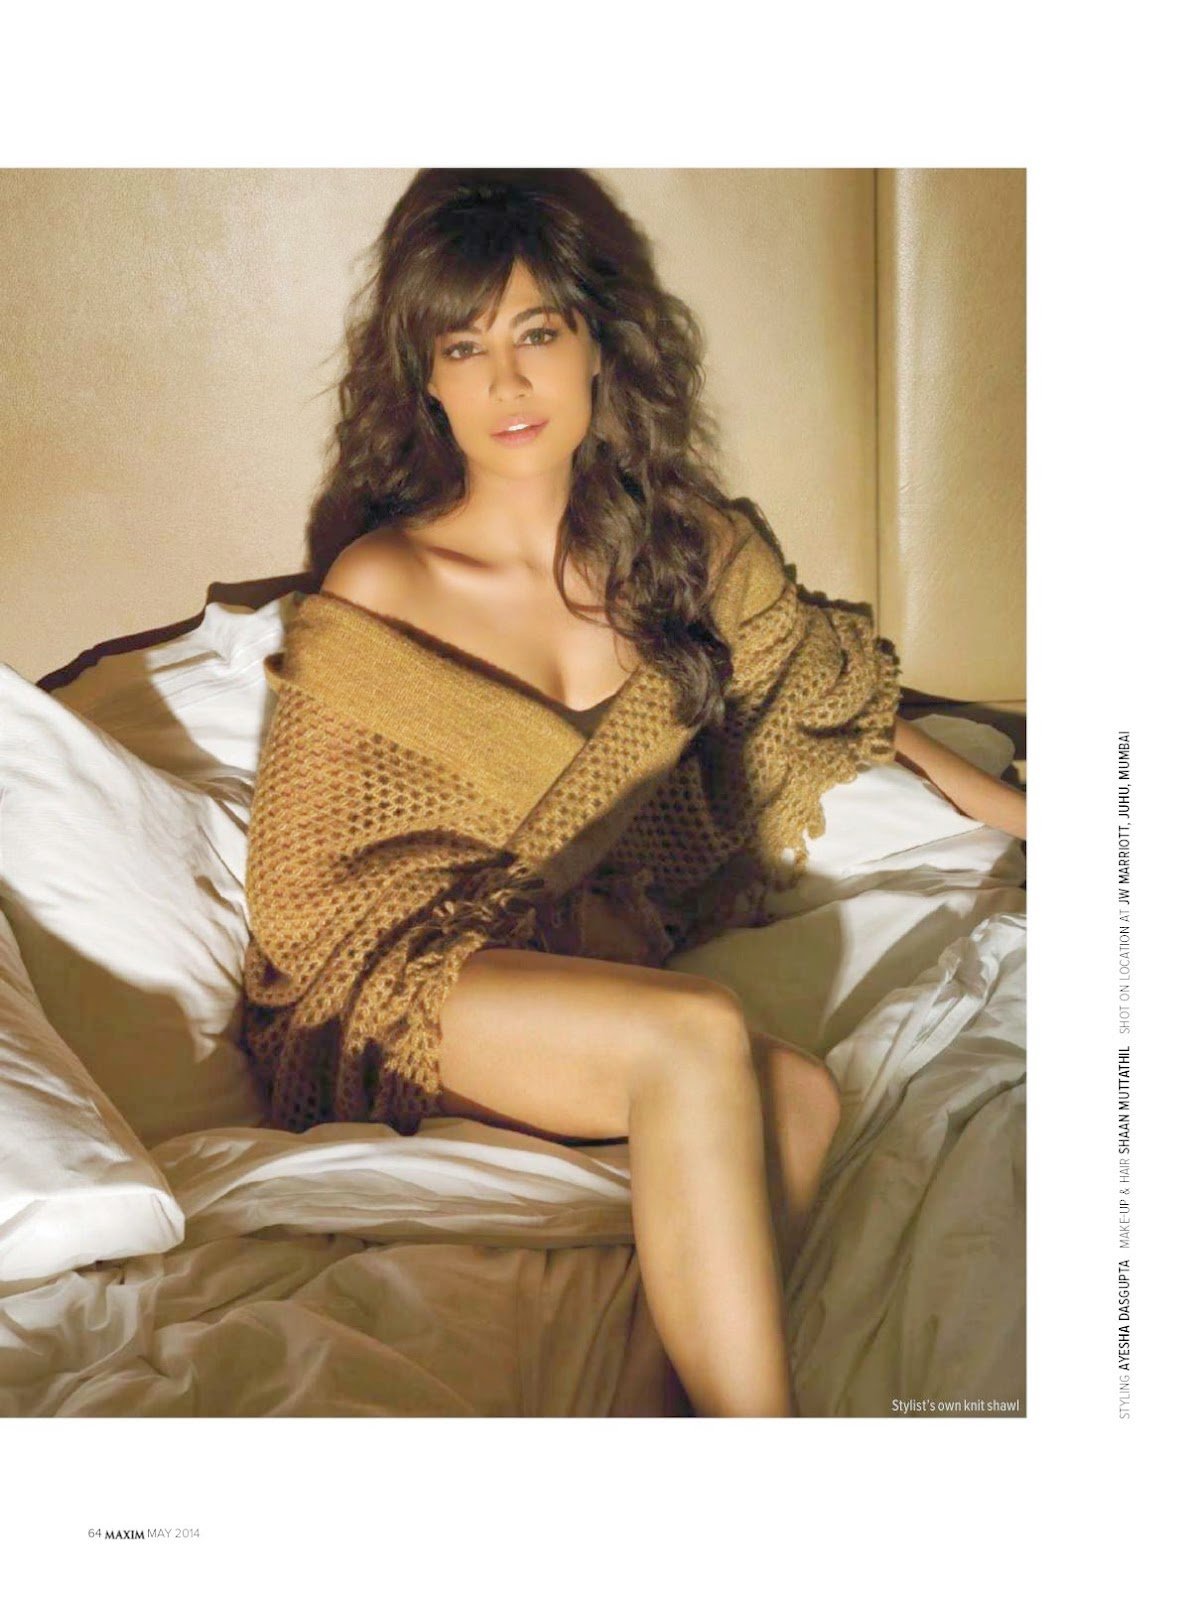 Chitrangada Singh - Hot Maxim Magazine Photoshoot May 2014